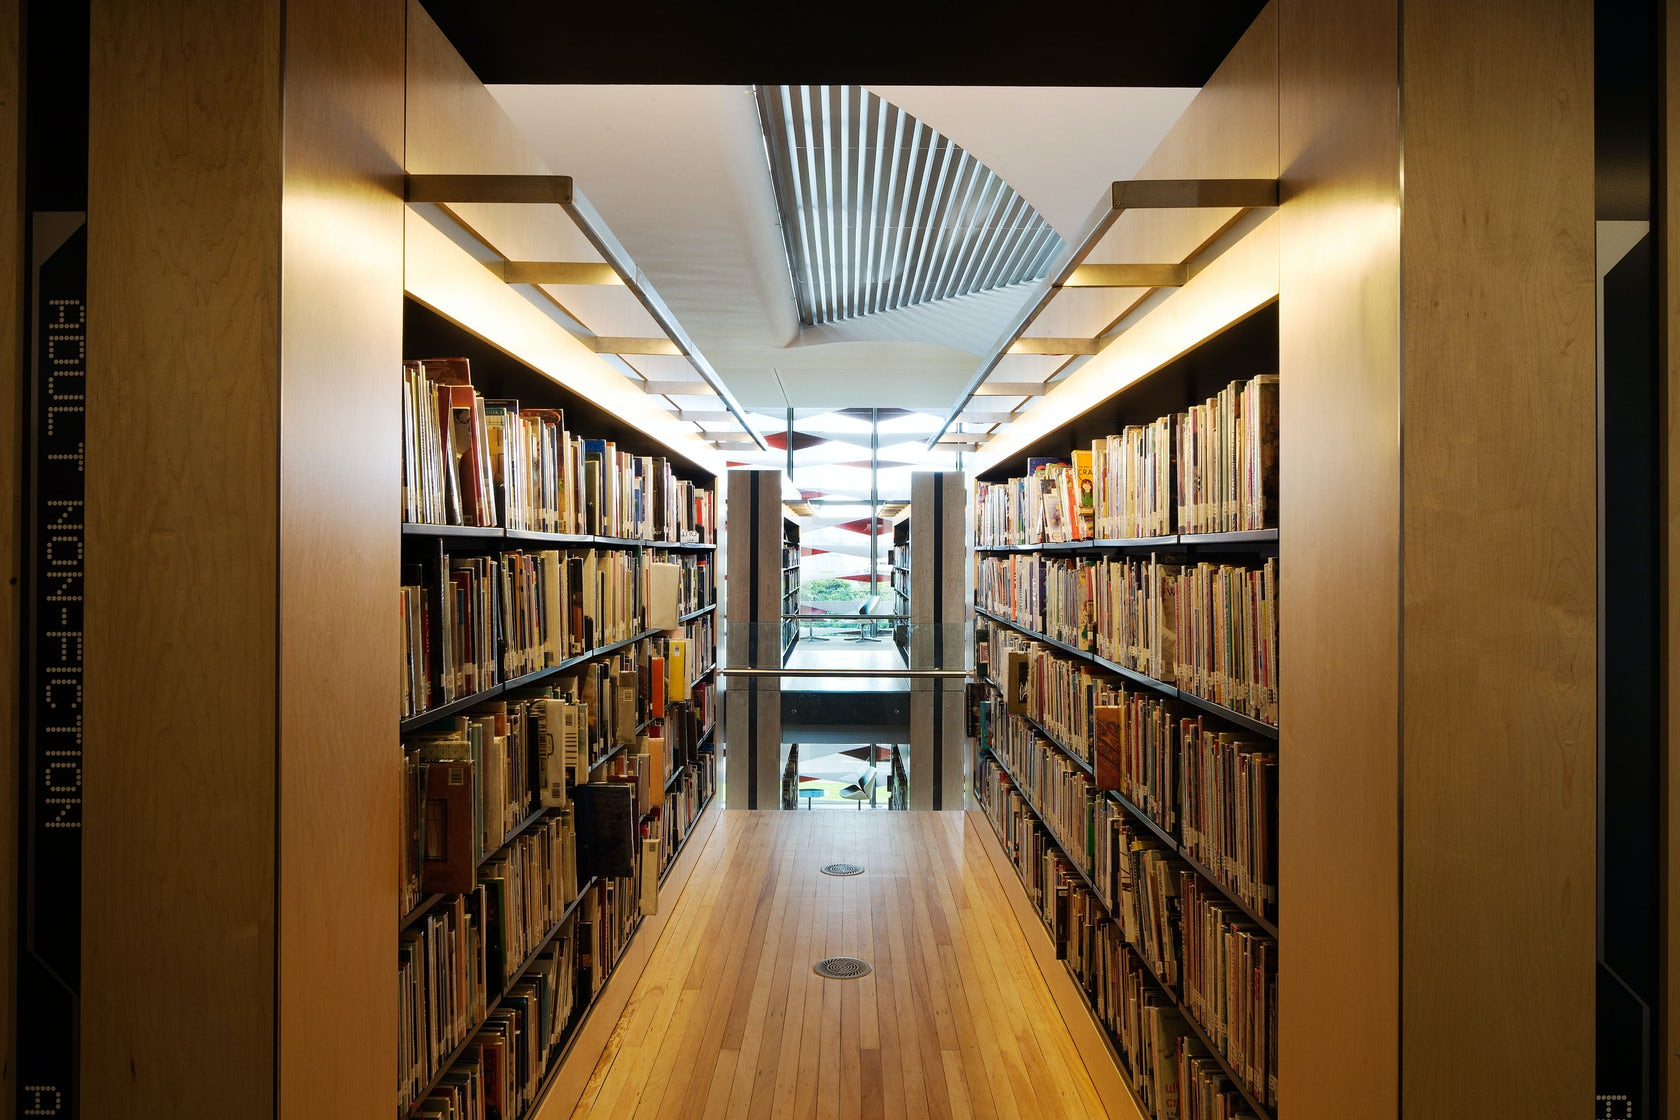 St George Auto >> Bankstown Library and Knowledge Centre - Architizer